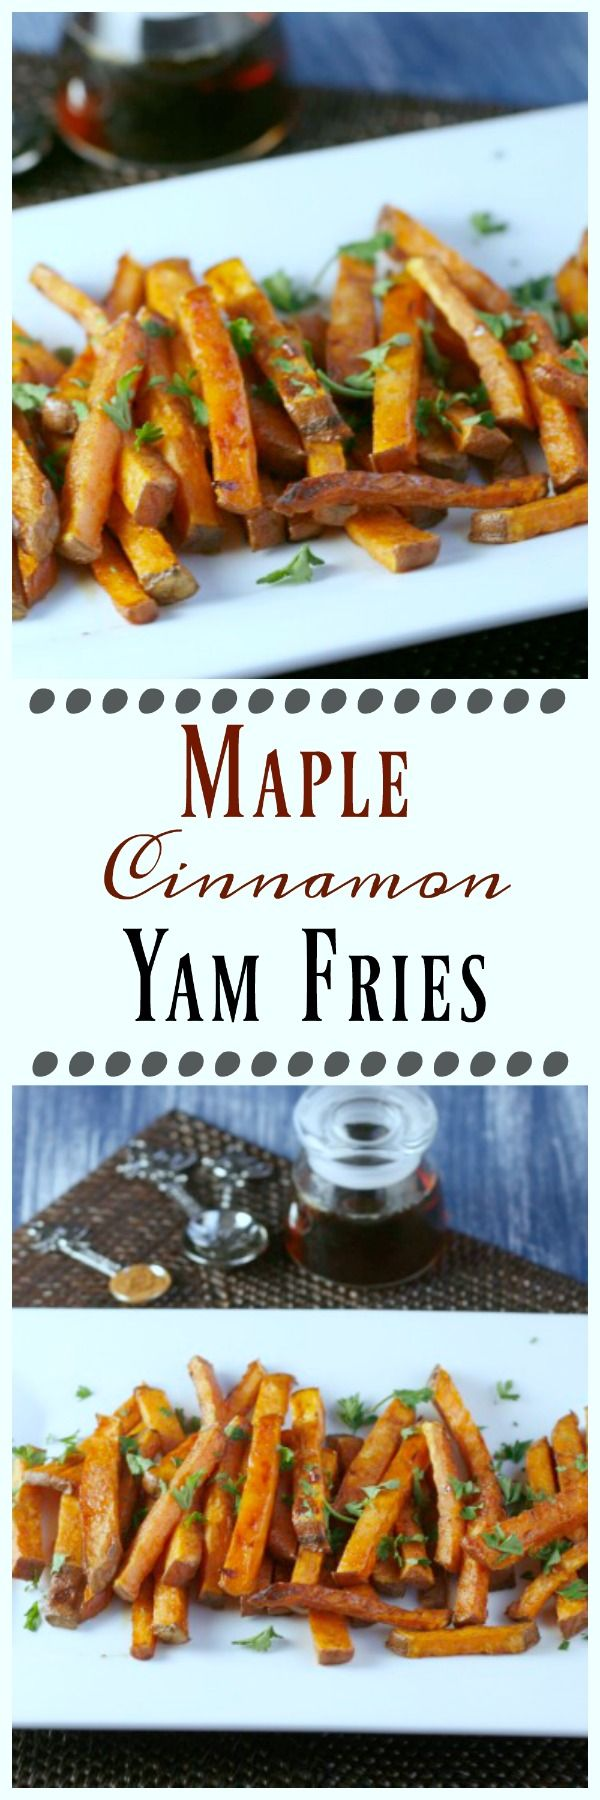 Maple Cinnamon Yam Fries. Your kids will love these delicious and healthy fries.